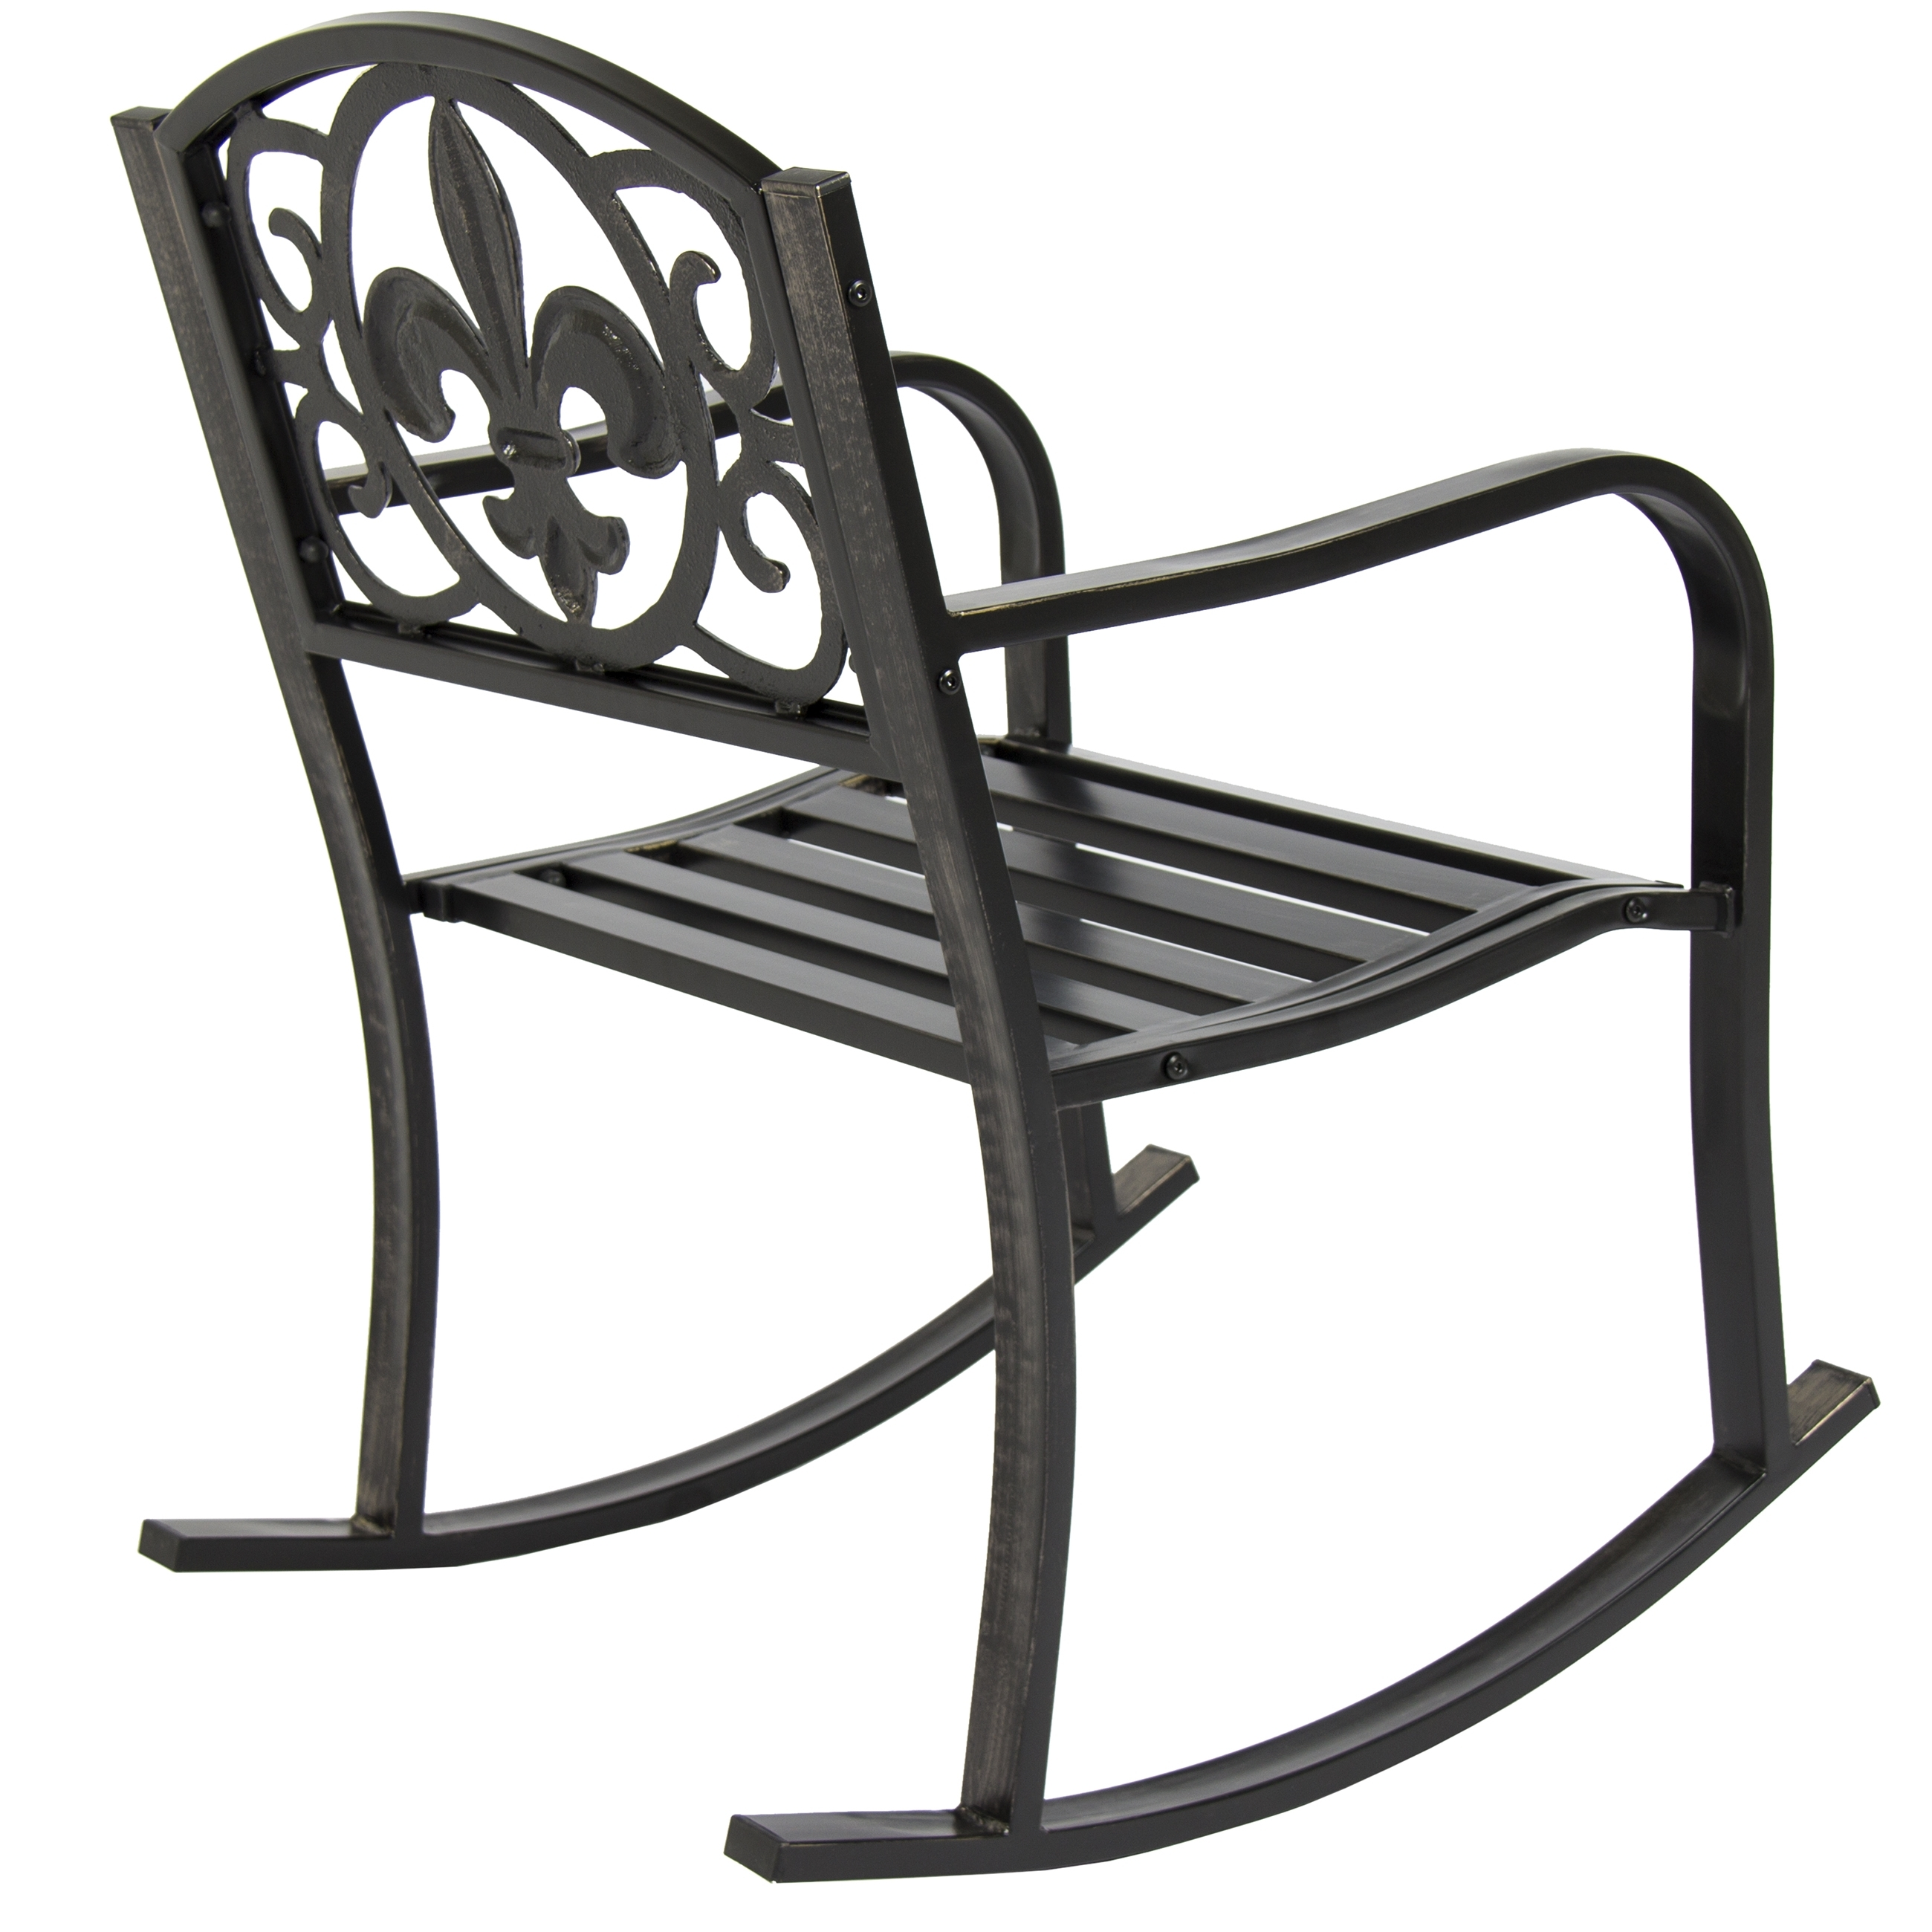 Bestchoiceproducts: Best Choice Products Metal Rocking Chair Seat Within Latest Patio Metal Rocking Chairs (View 14 of 20)